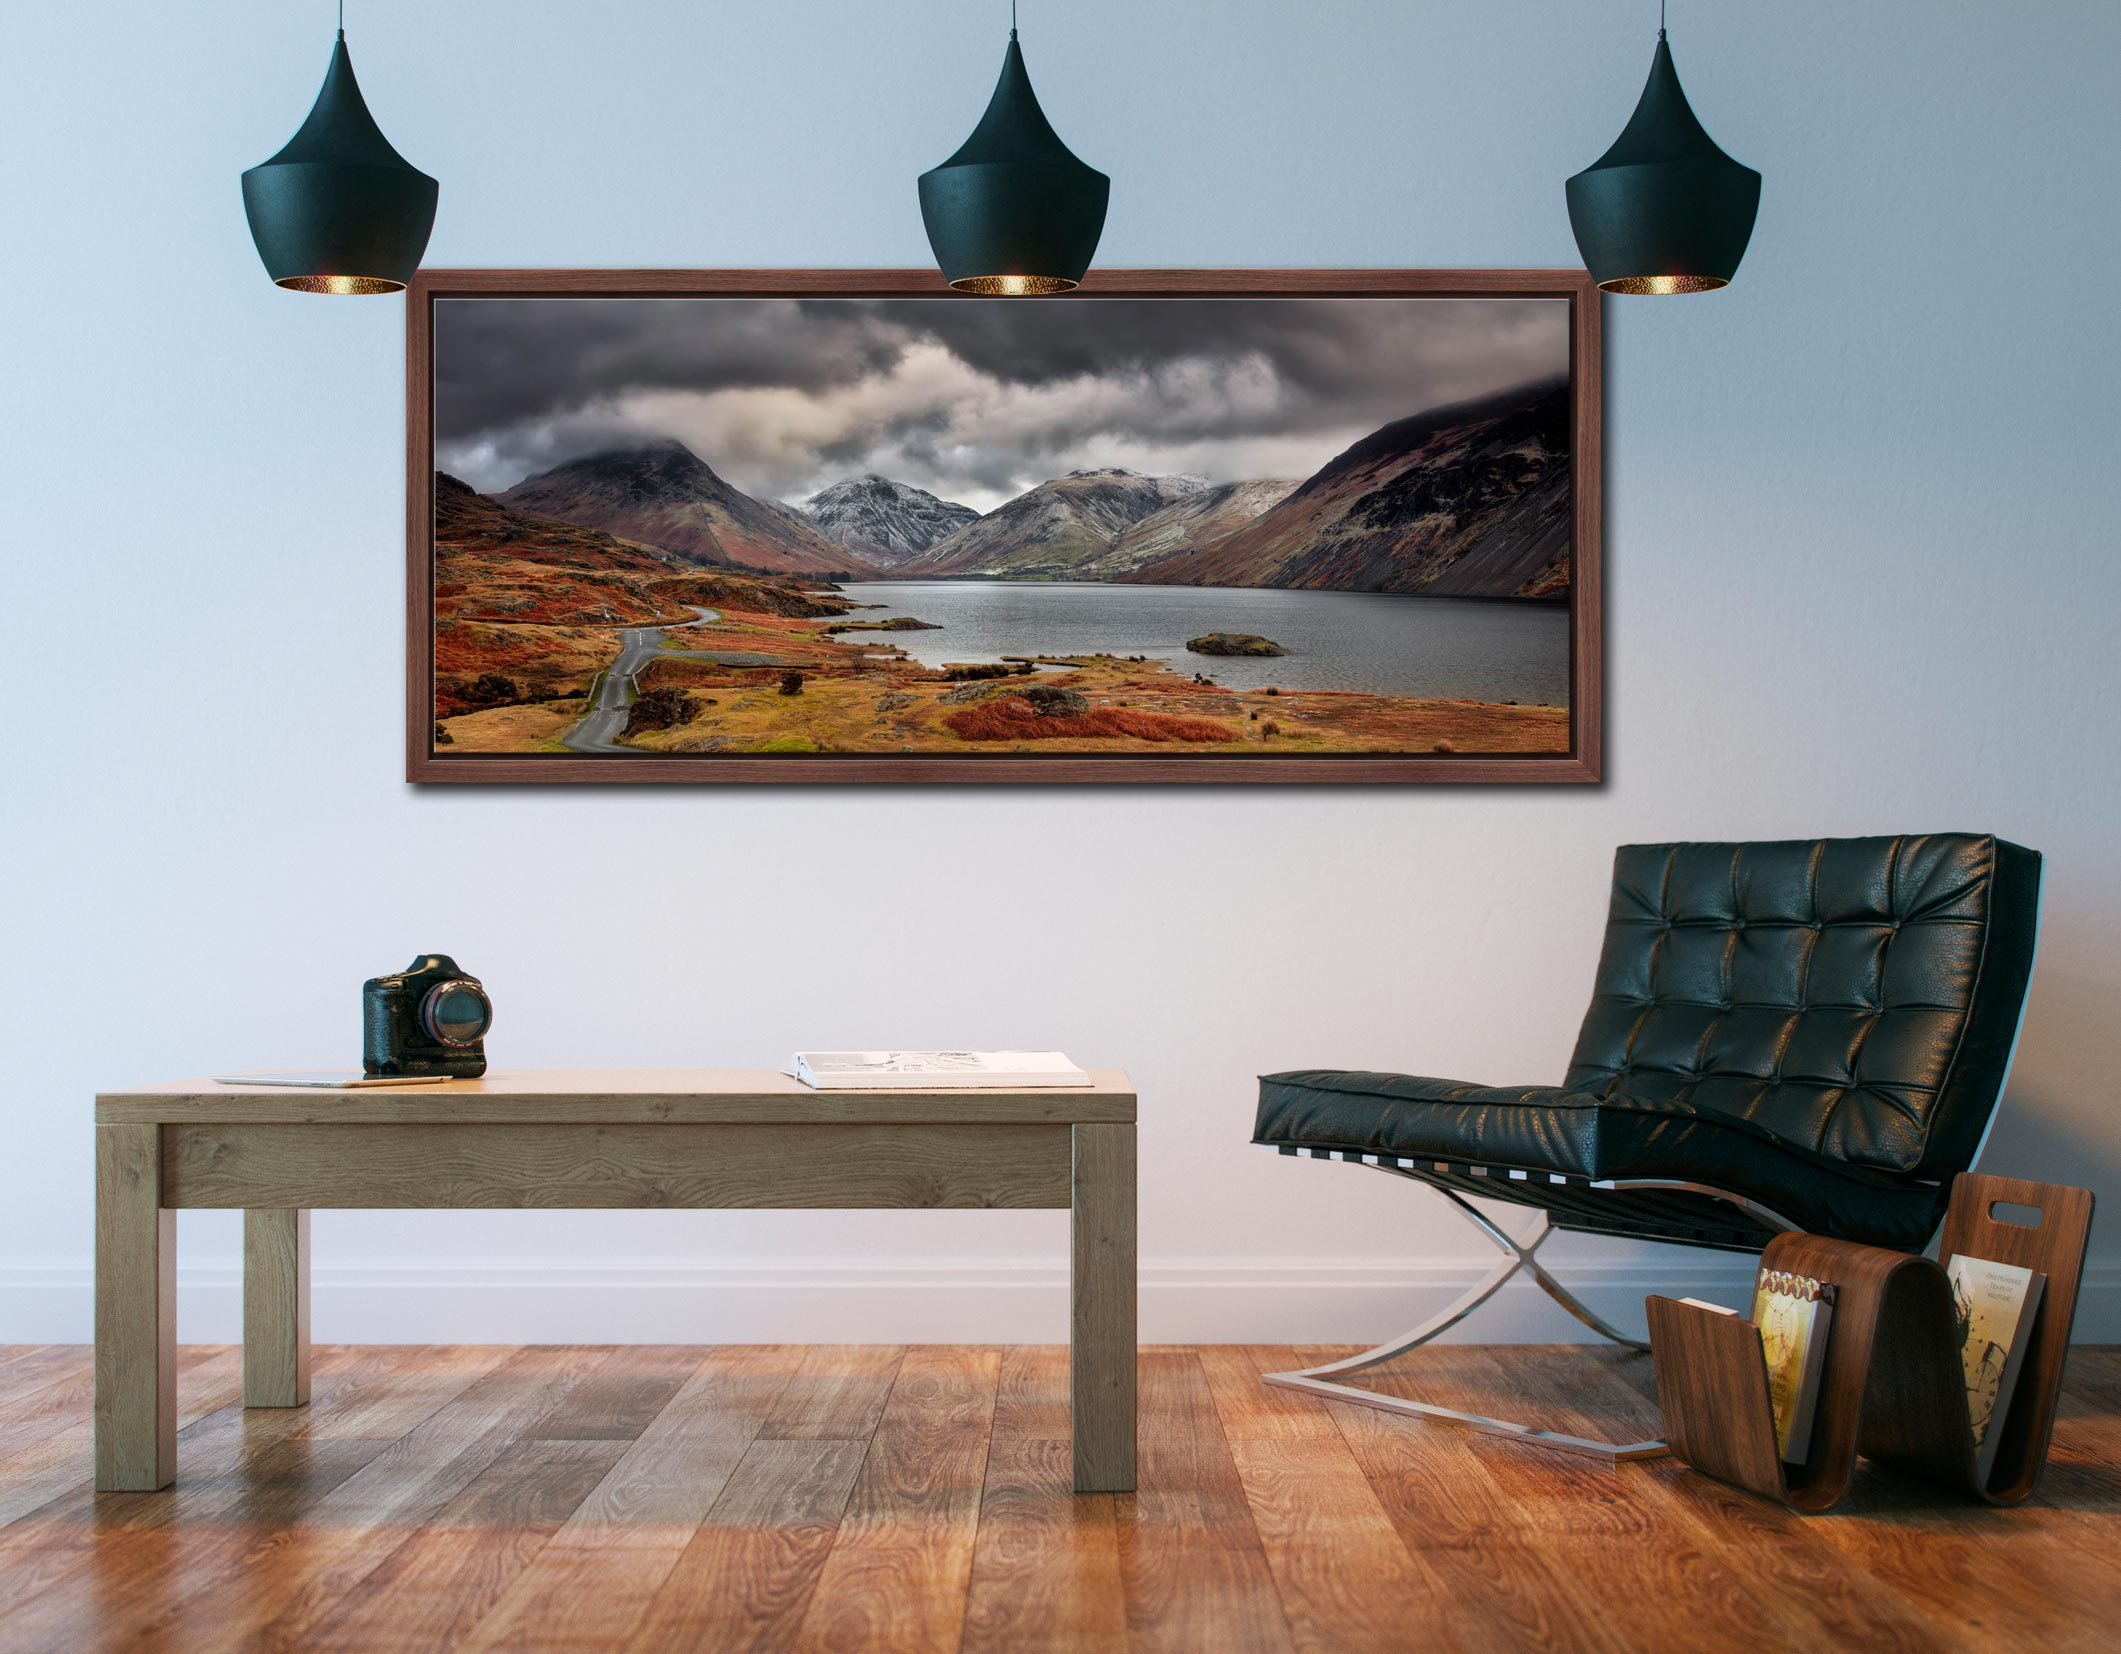 View down a chilly Wast Water to Sca Fell, Great Gable and Yewbarrow - Walnut floater frame with acrylic glazing on Wall